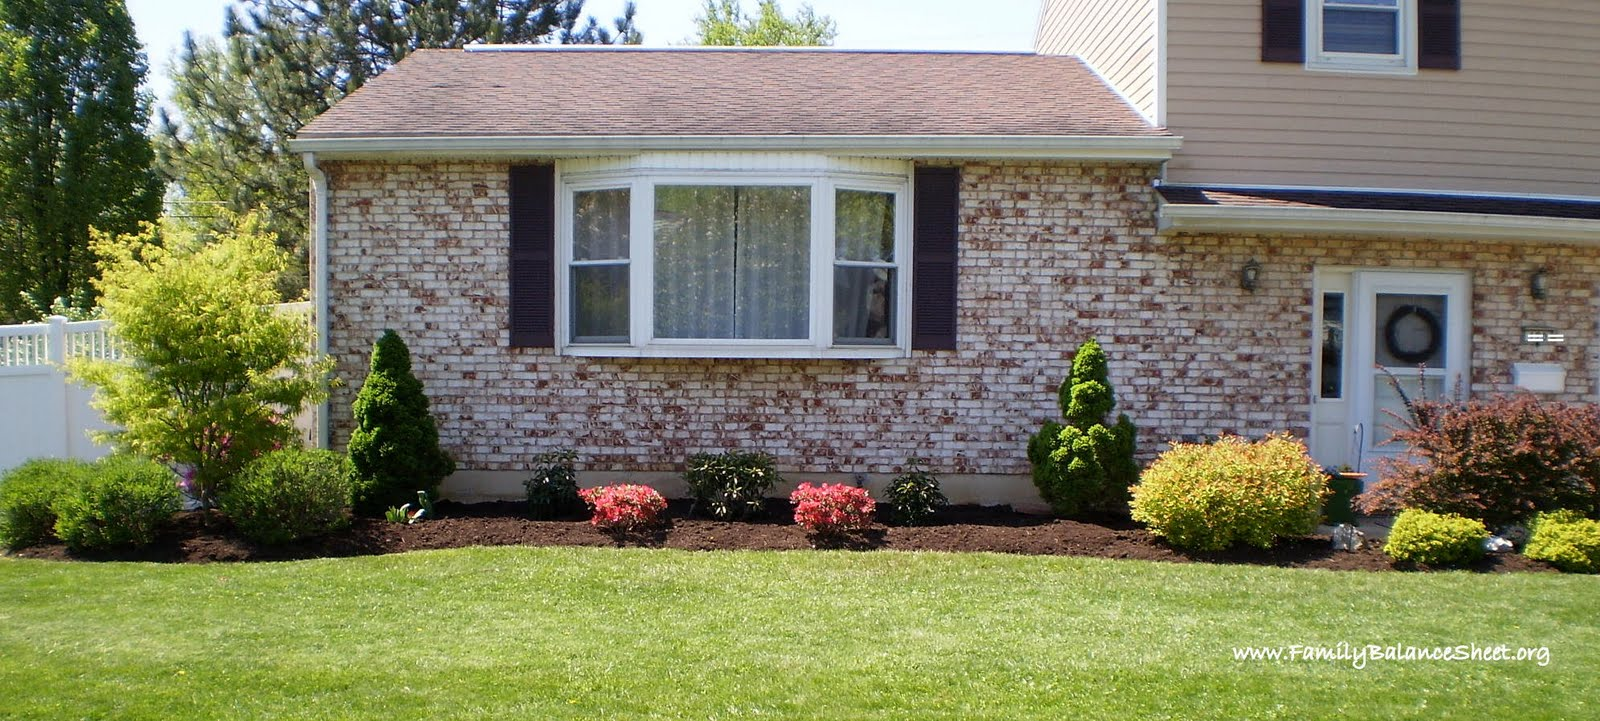 15 tips to help you design your front yard save money too for Front lawn designs